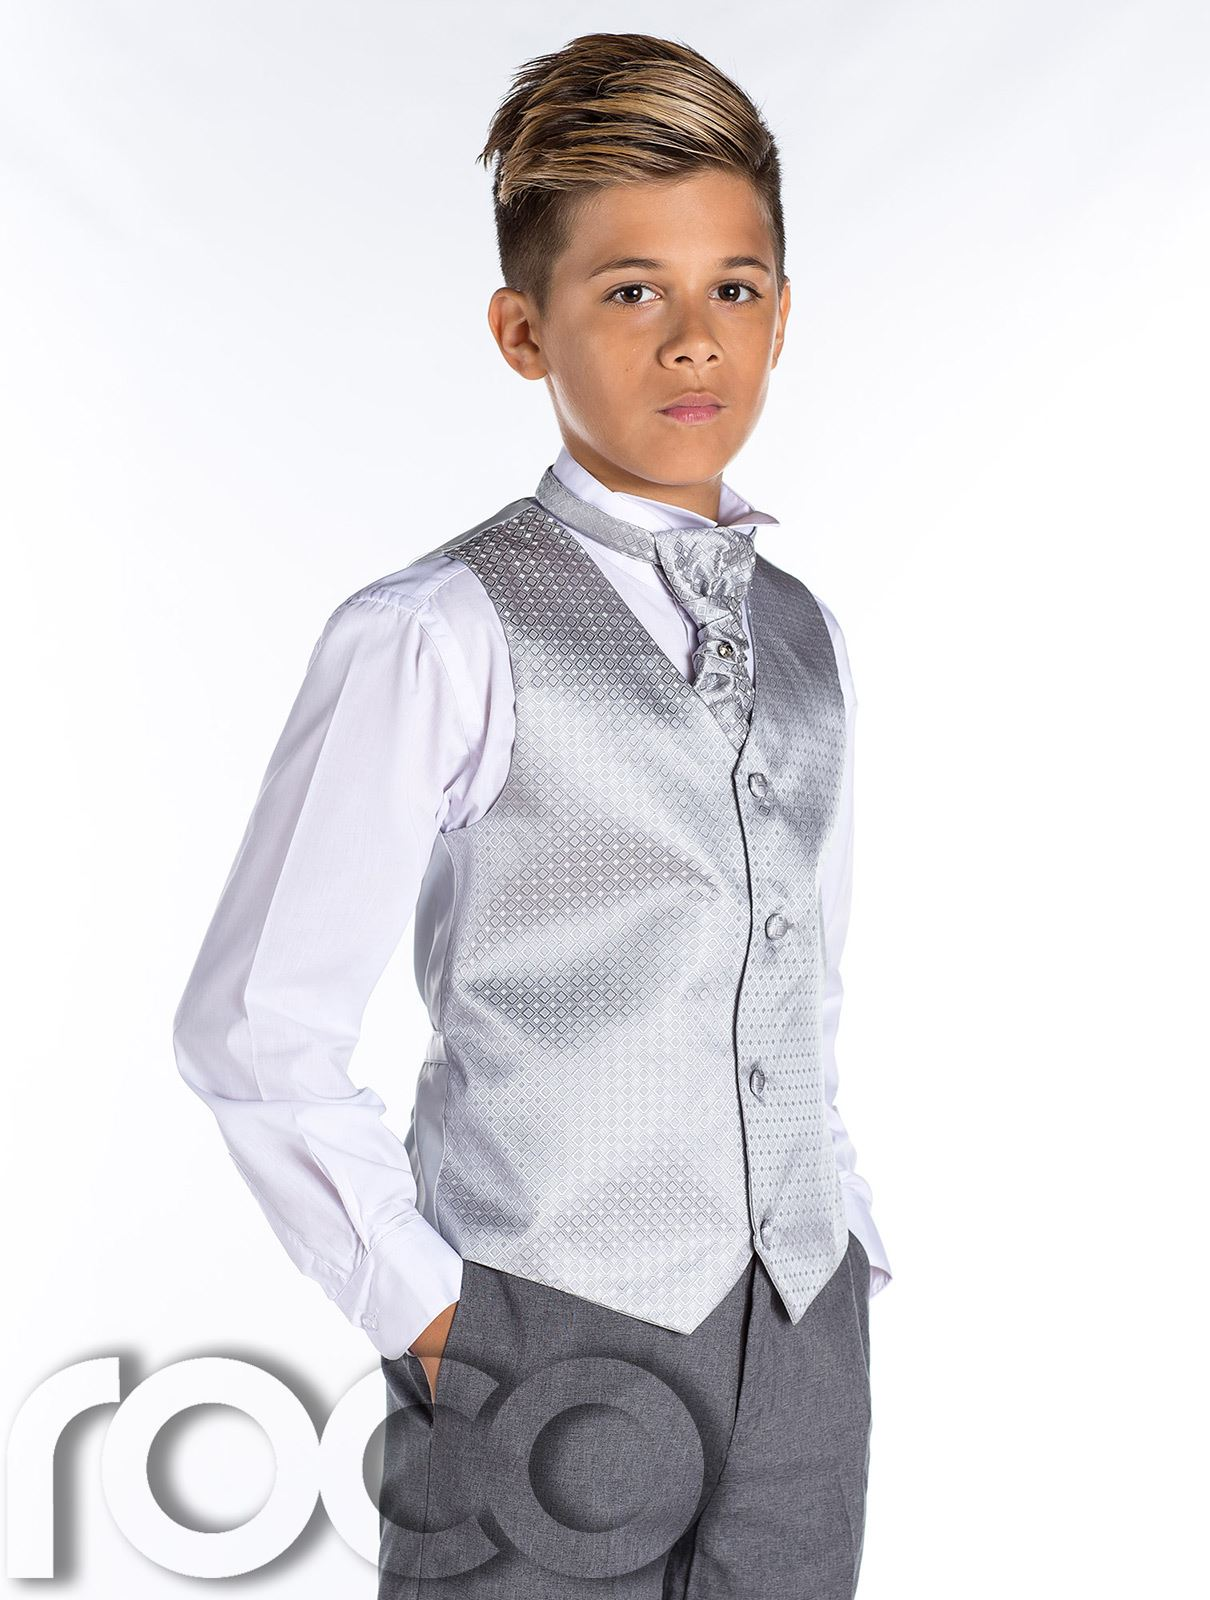 Boys' Clothing: Free Shipping on orders over $45 at getessay2016.tk - Your Online Boys' Clothing Store! Get 5% in rewards with Club O!